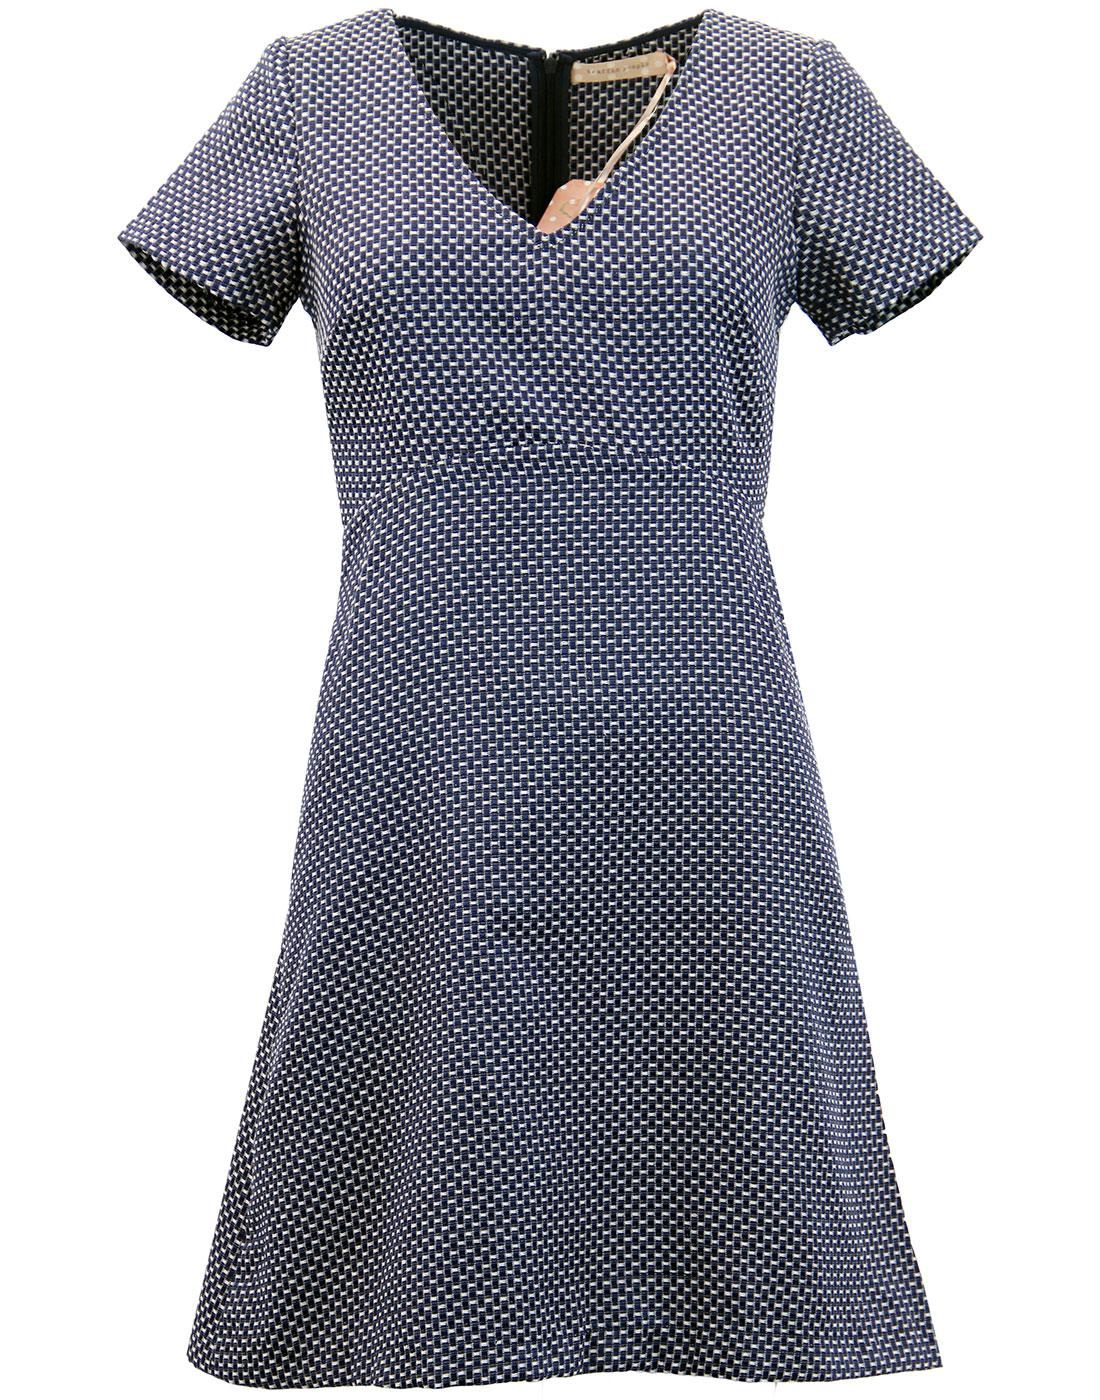 Hi Jinks TRAFFIC PEOPLE Retro Textured Weave Dress